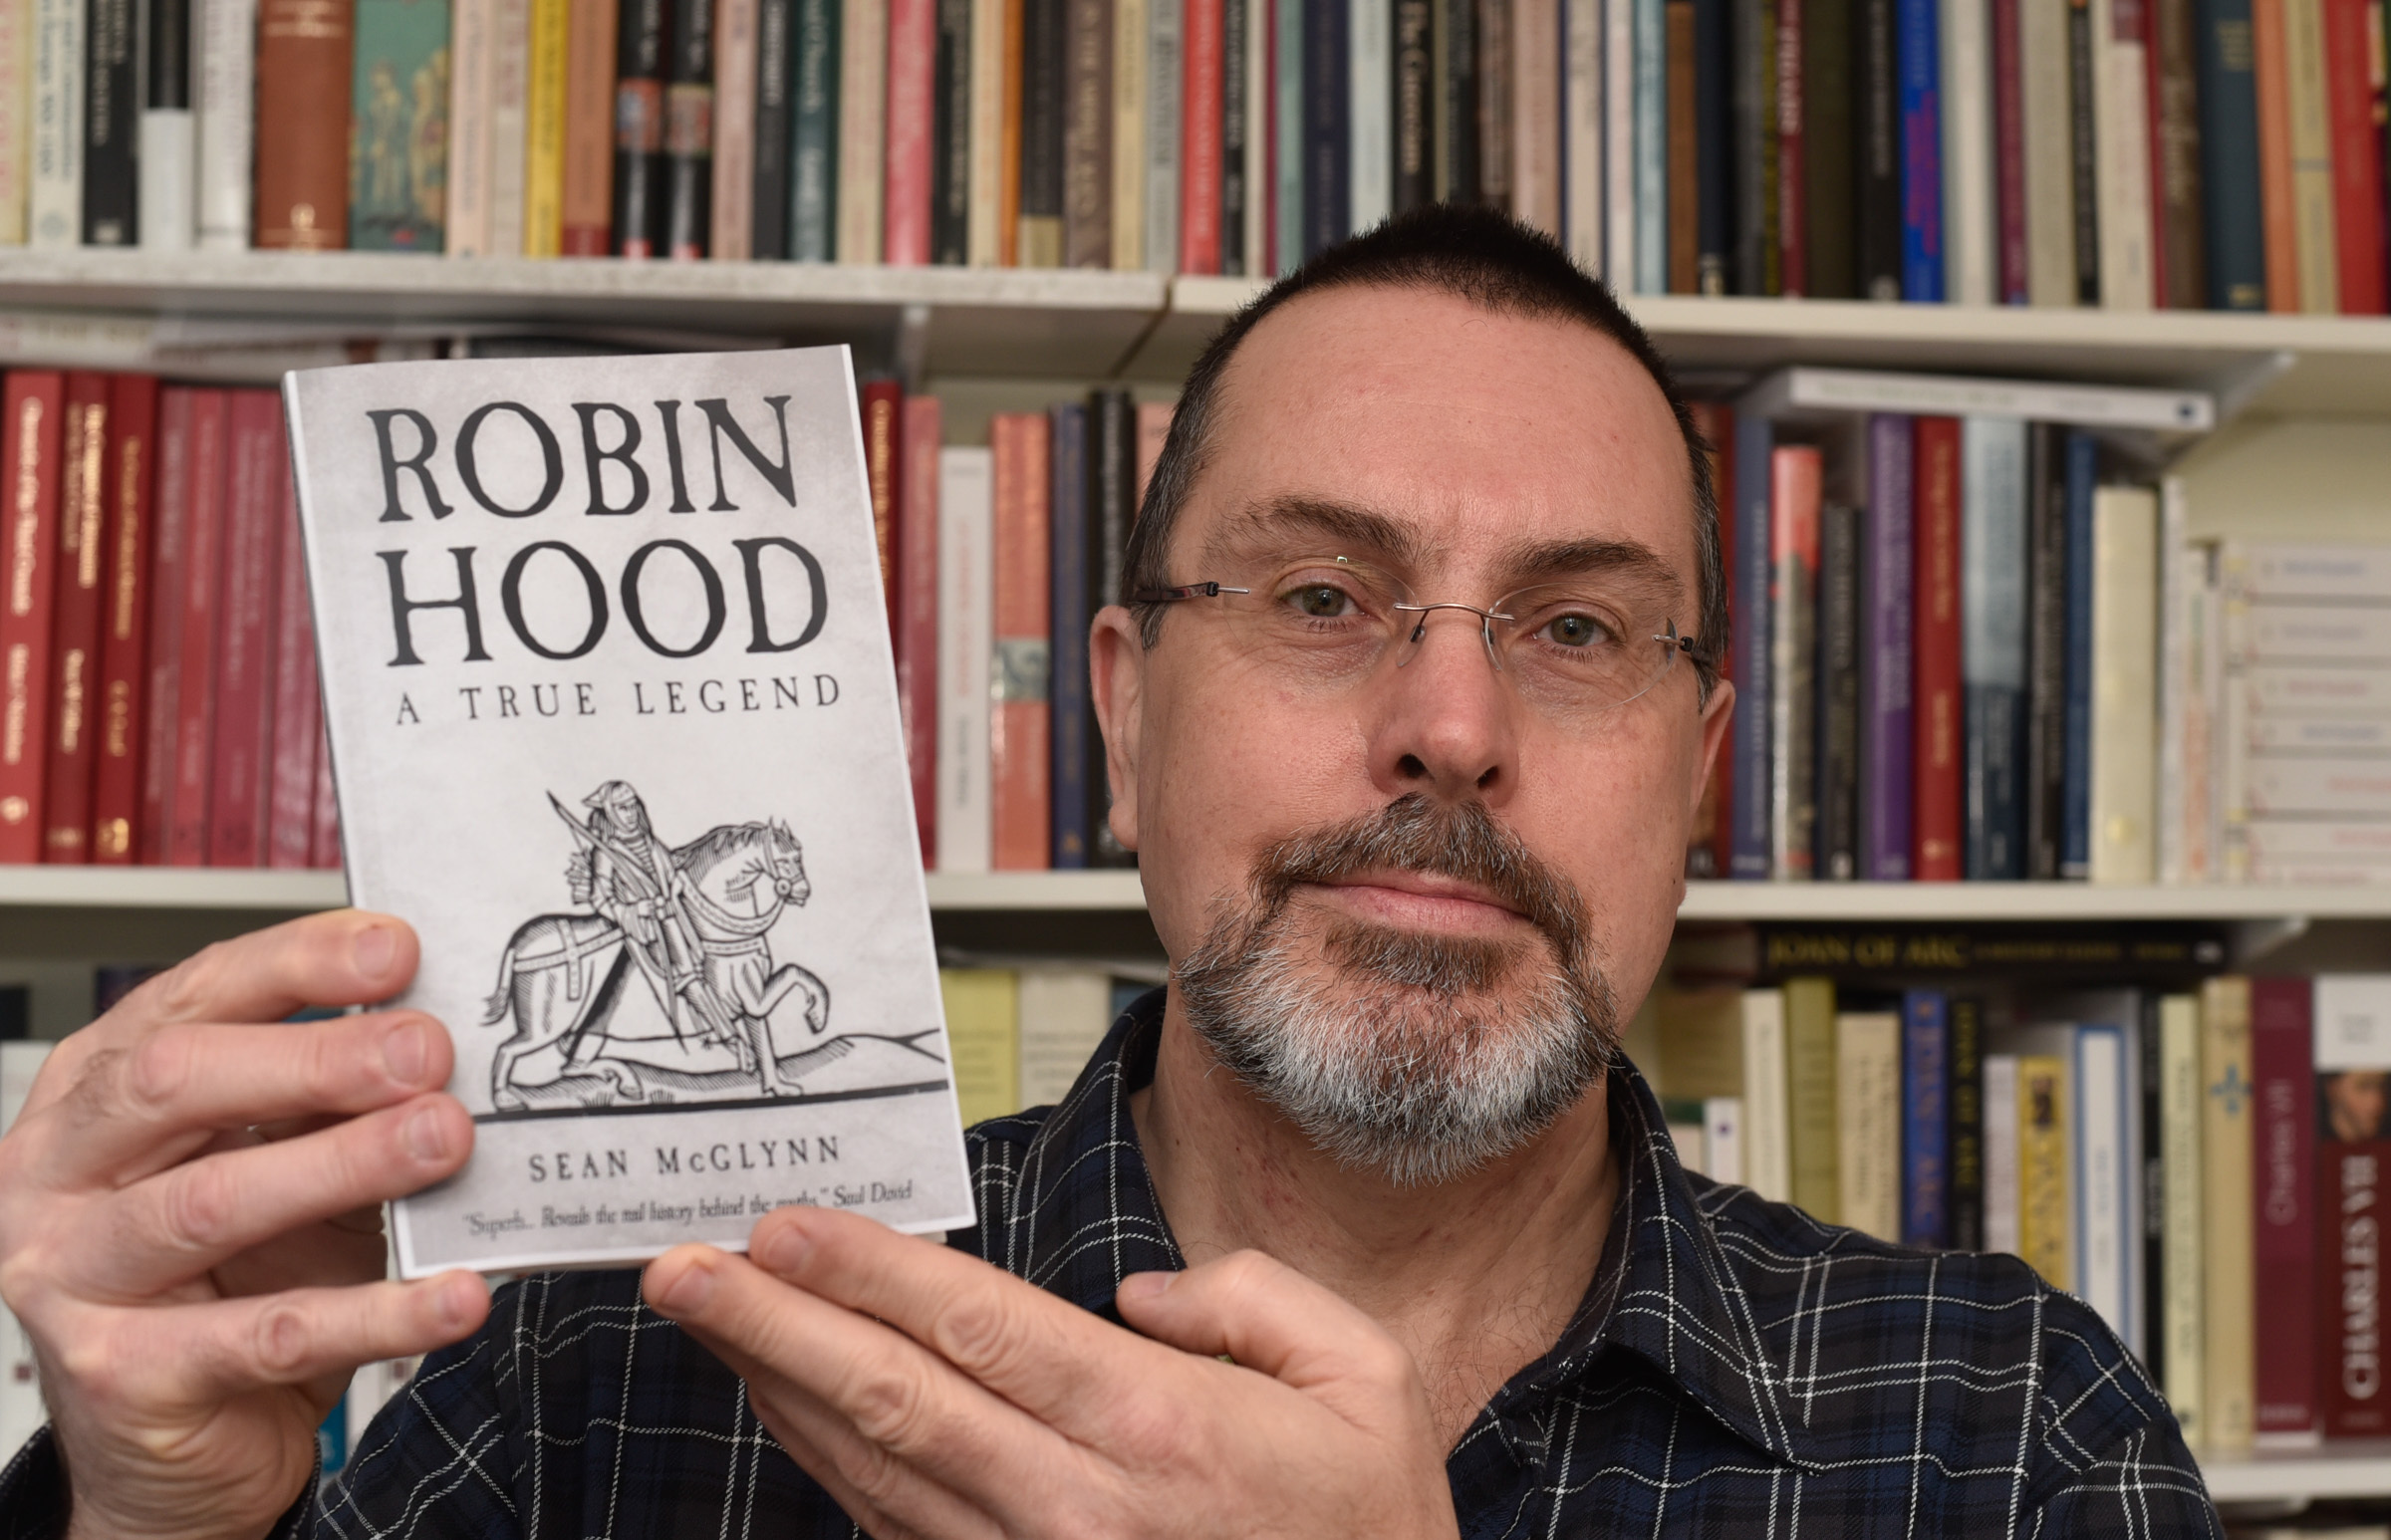 Author Sean McGlynn of Monkton Farleigh with his latest book, Robin Hood -A True Legend.Photo by www.gphillipsphotography.com GP1523.